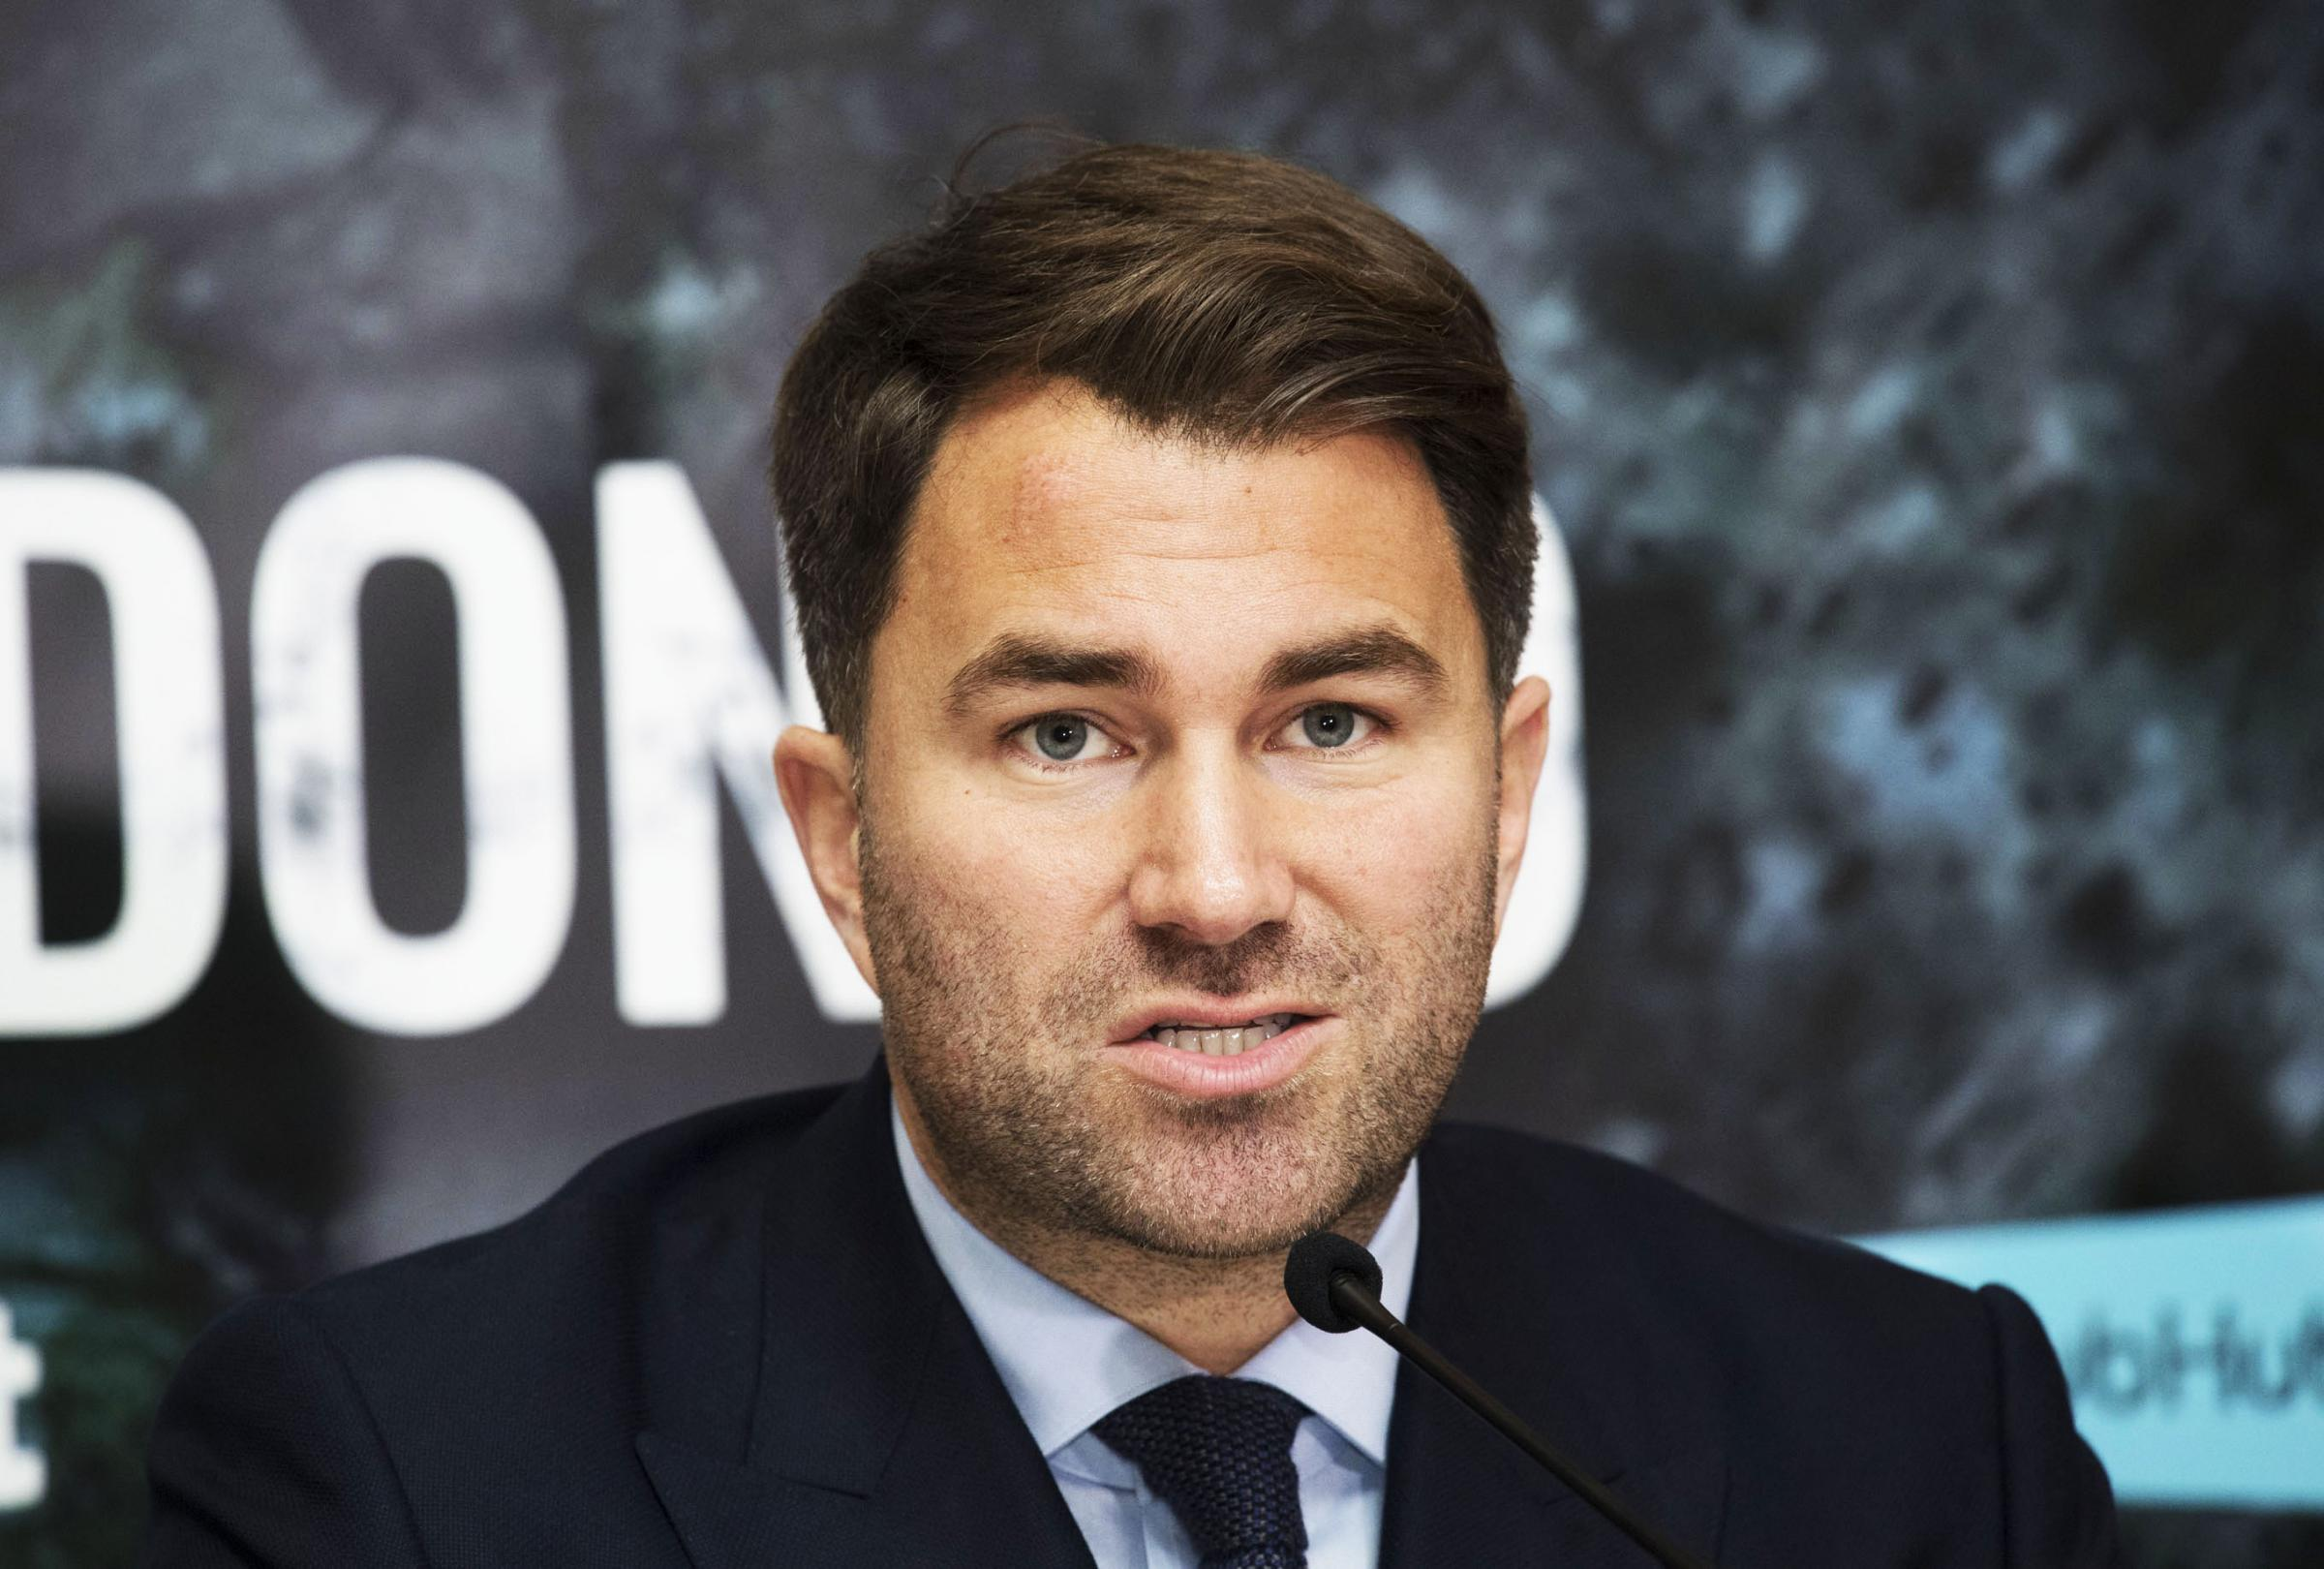 Money talks: Promoter Eddie Hearn says that money, and not titles, should be the priority of Ricky Burns and Anthony Crolla.